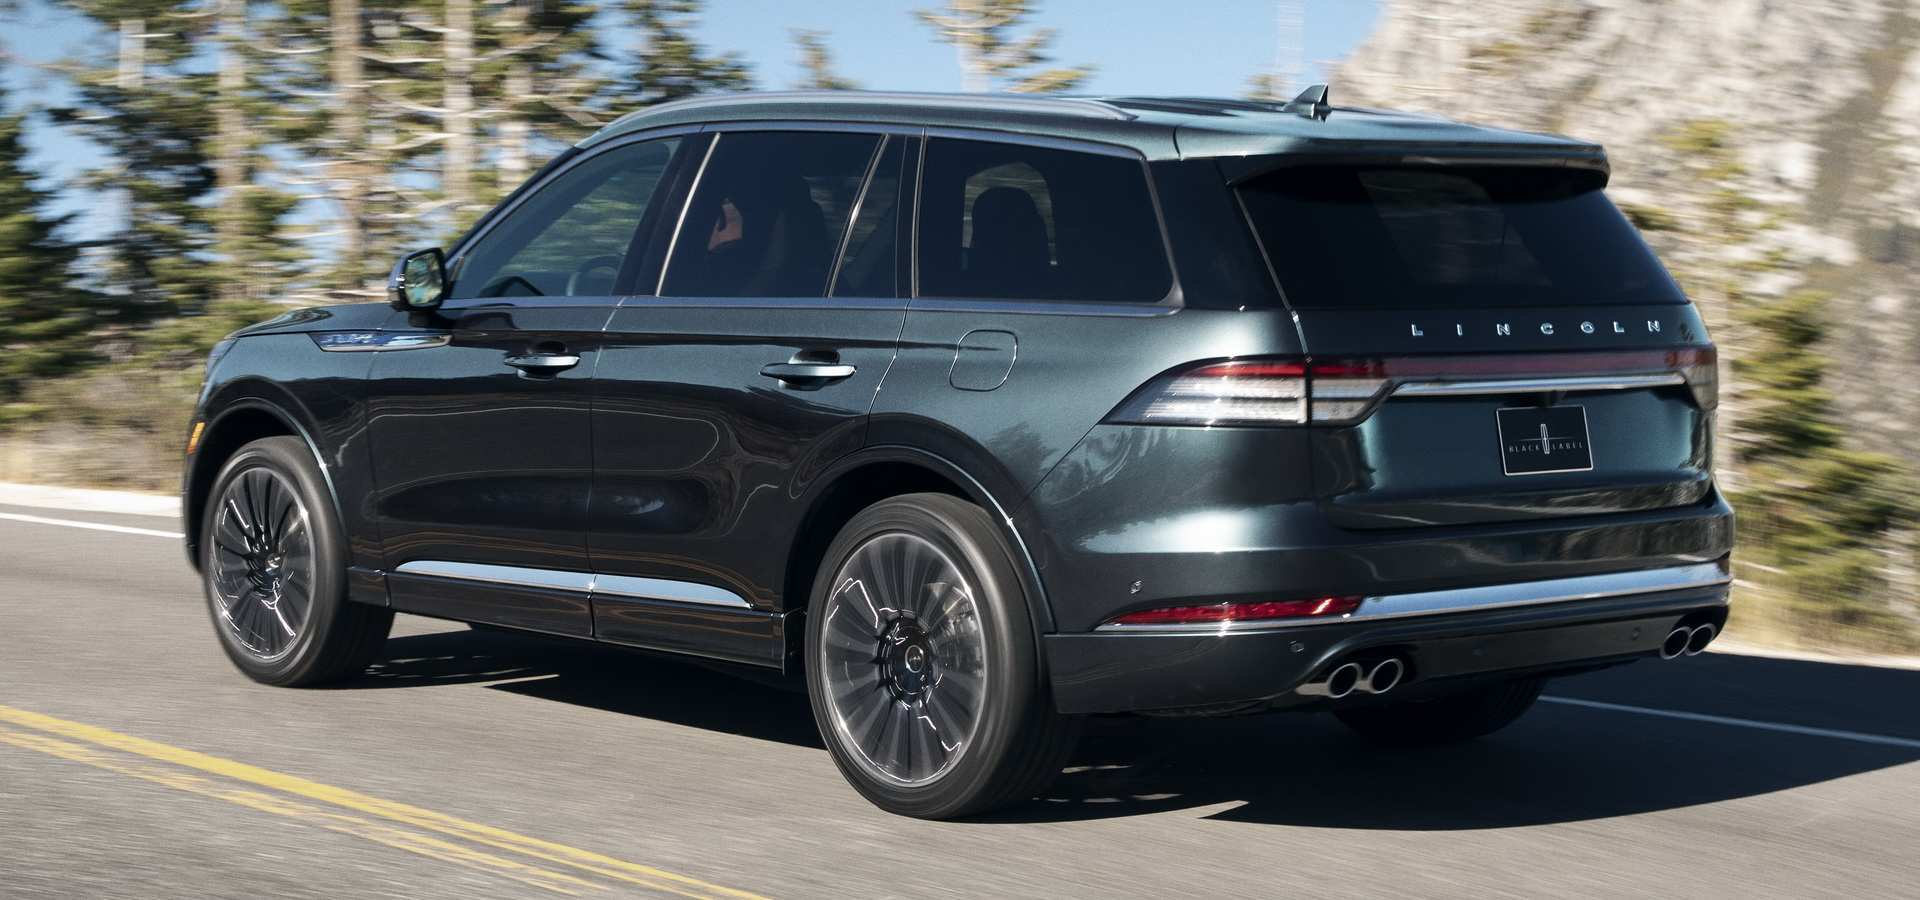 93 New 2020 Lincoln Aviator Vs Cadillac Xt6 Speed Test by 2020 Lincoln Aviator Vs Cadillac Xt6